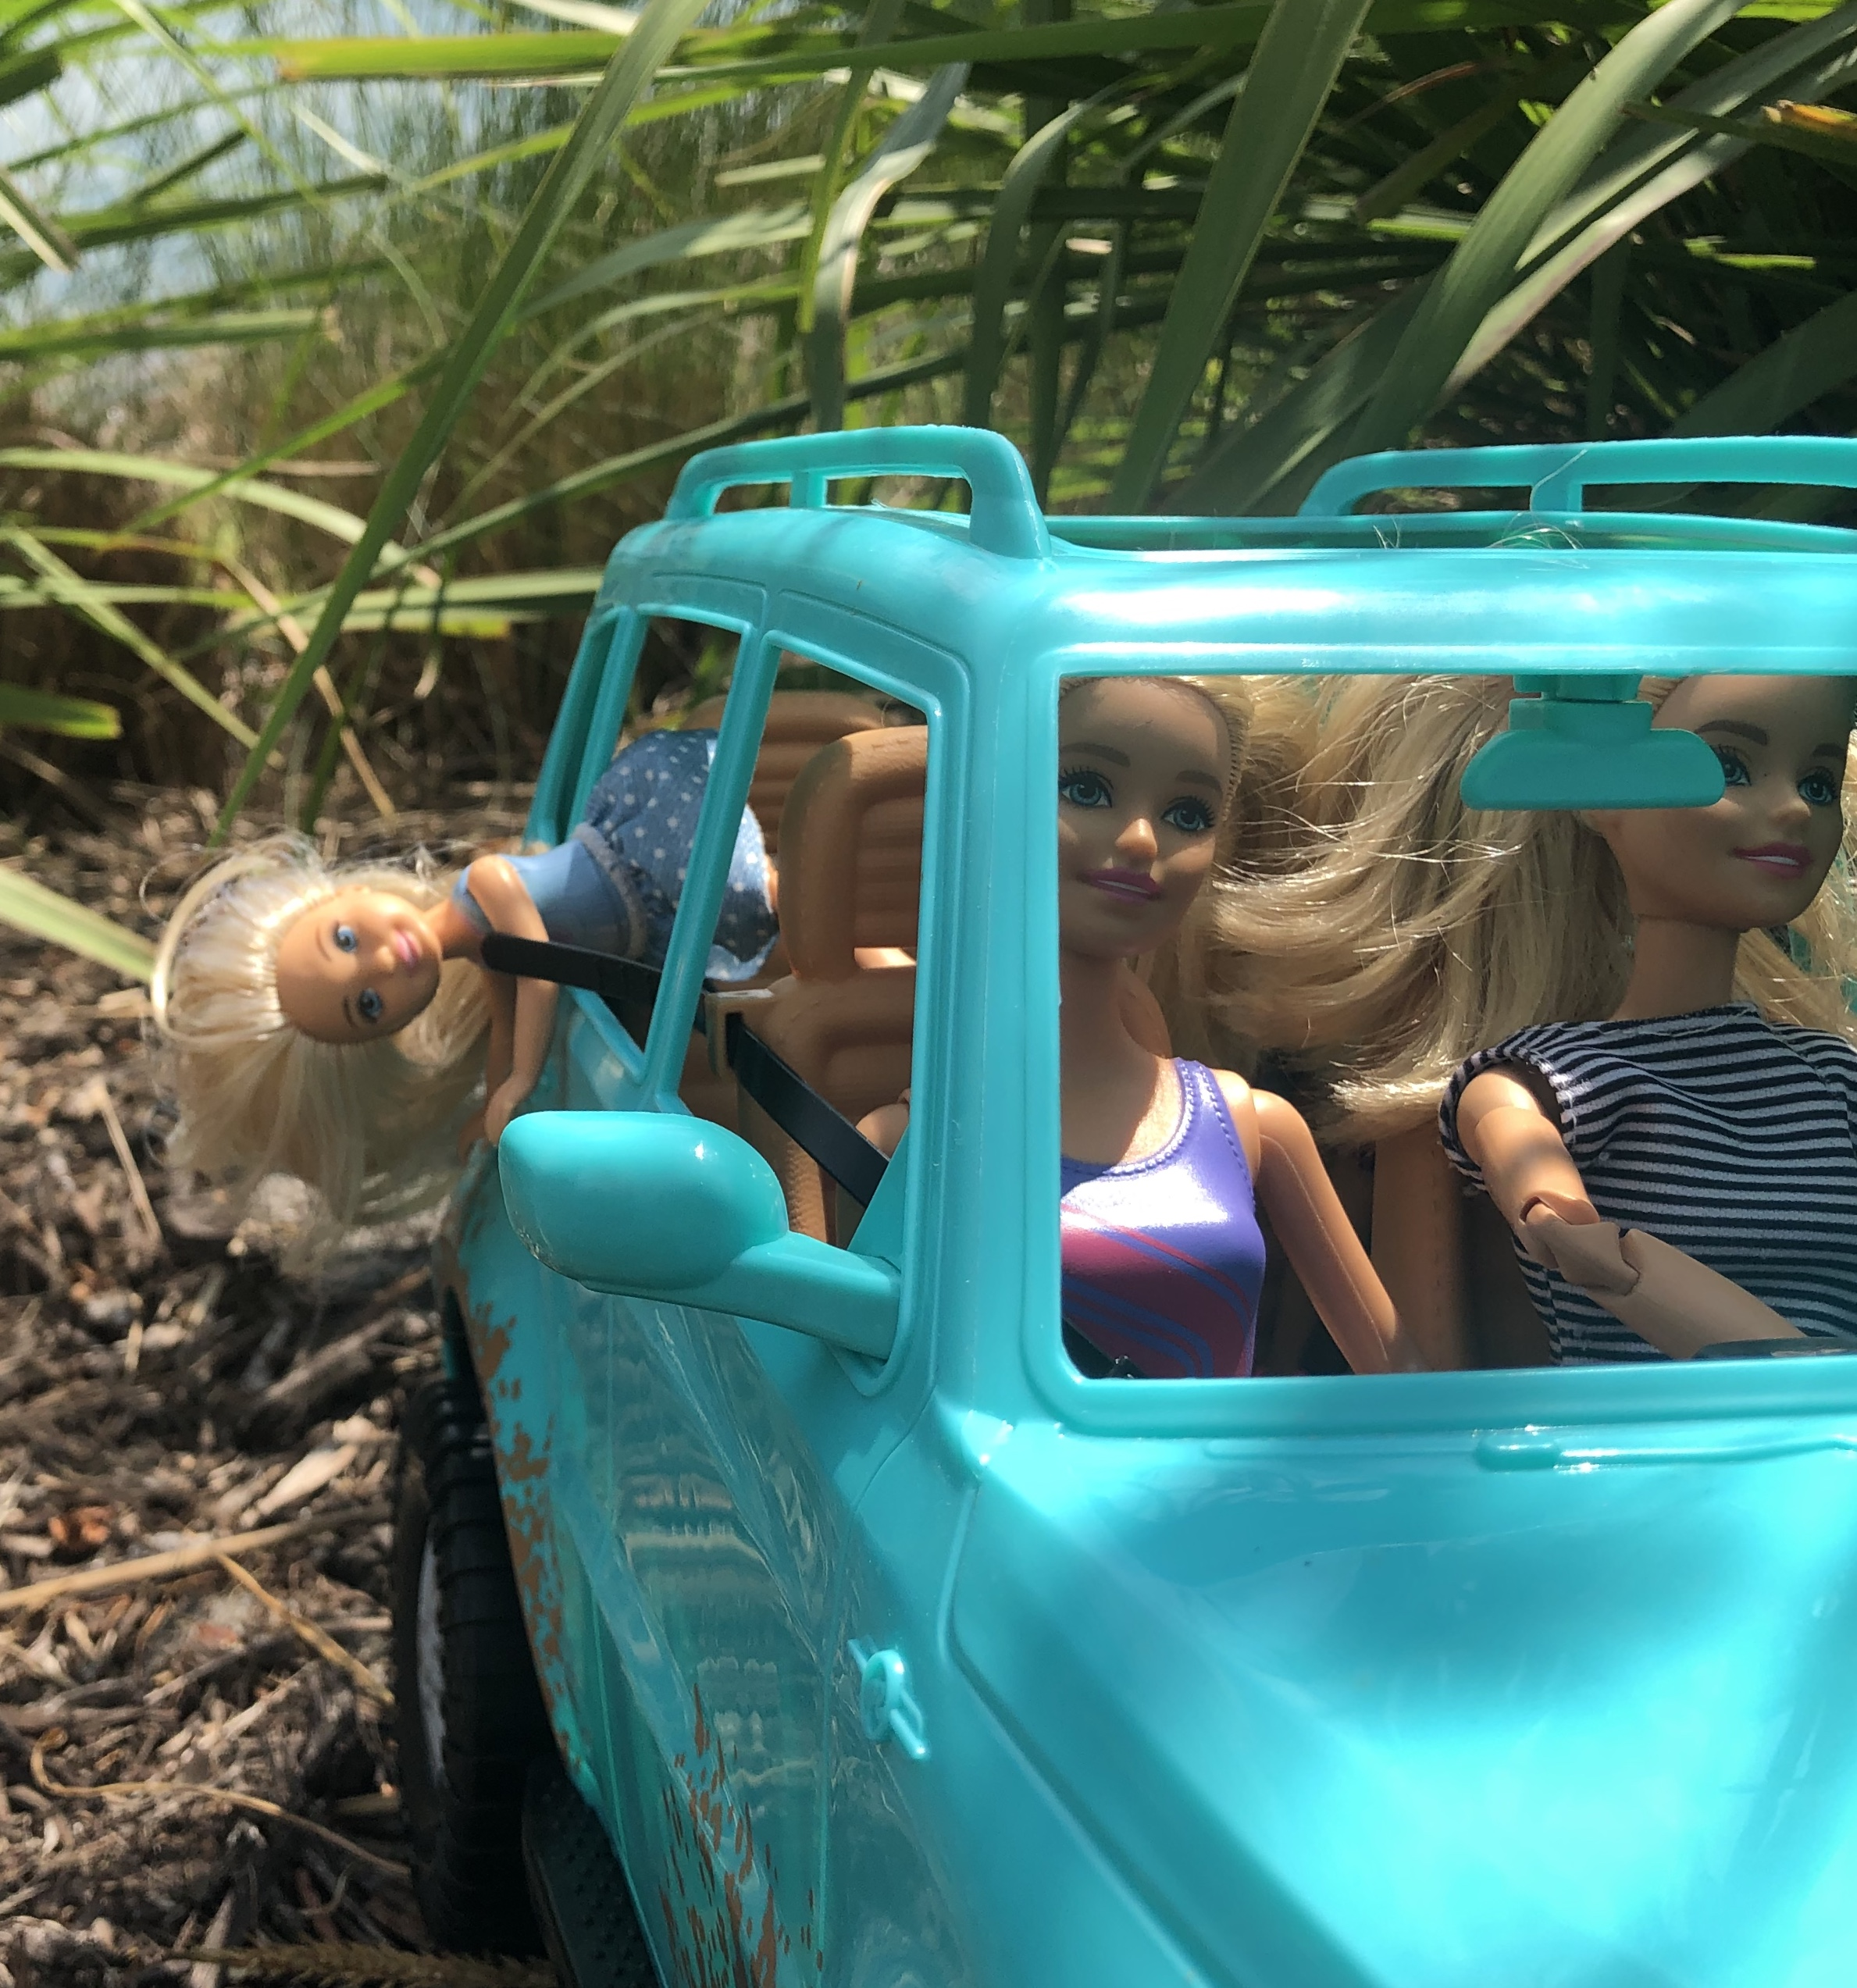 A Chelsea doll falling out the backseat of a teal Jeep. Her head and upper body is hanging down.